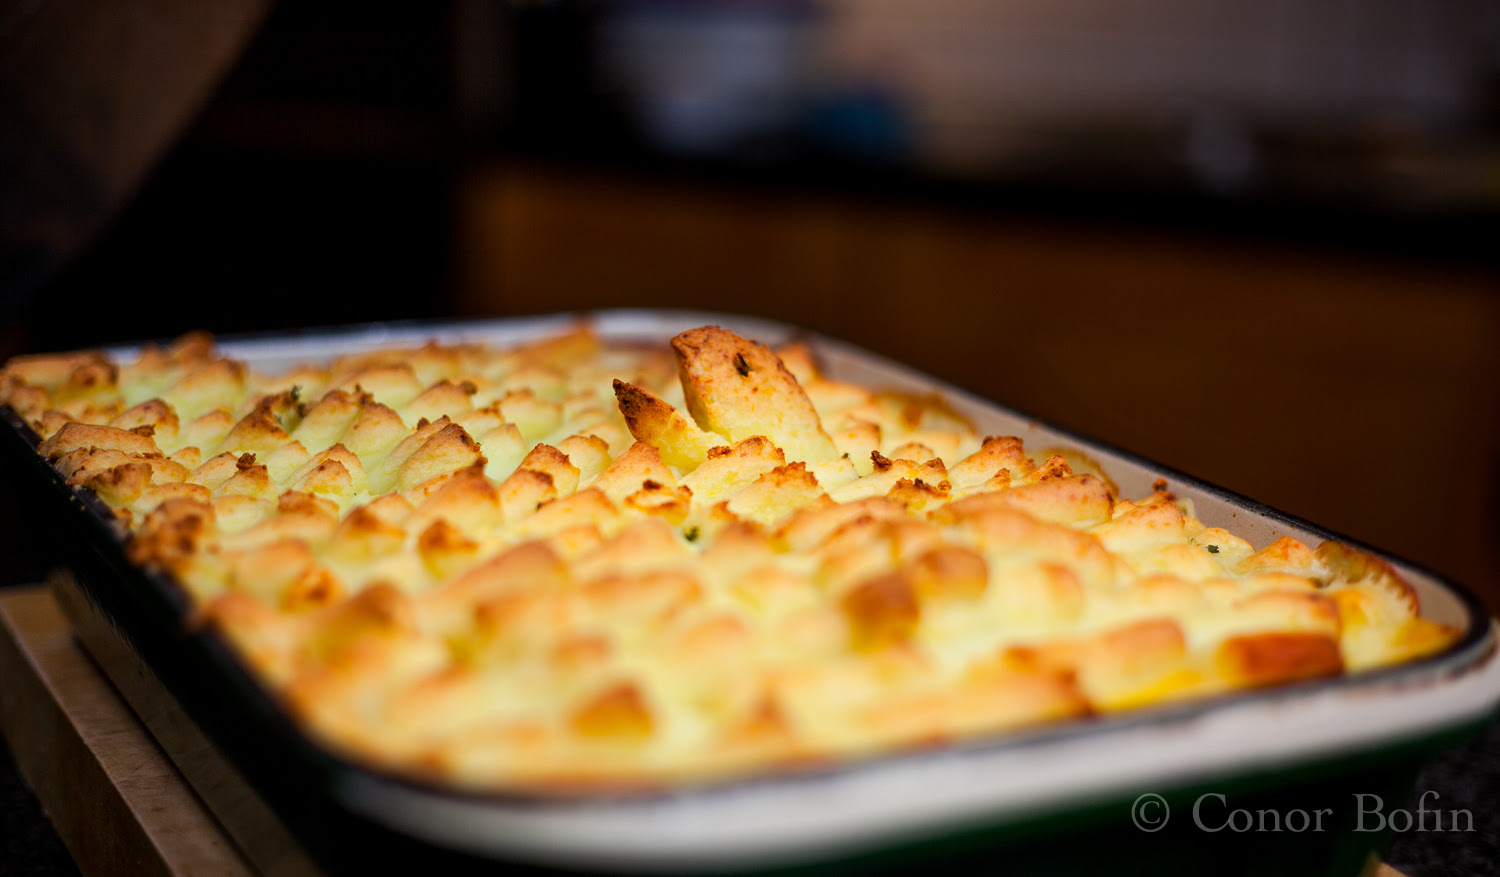 Meat reheat part 2 - Wave goodbye to Fish Pie | One Man's Meat